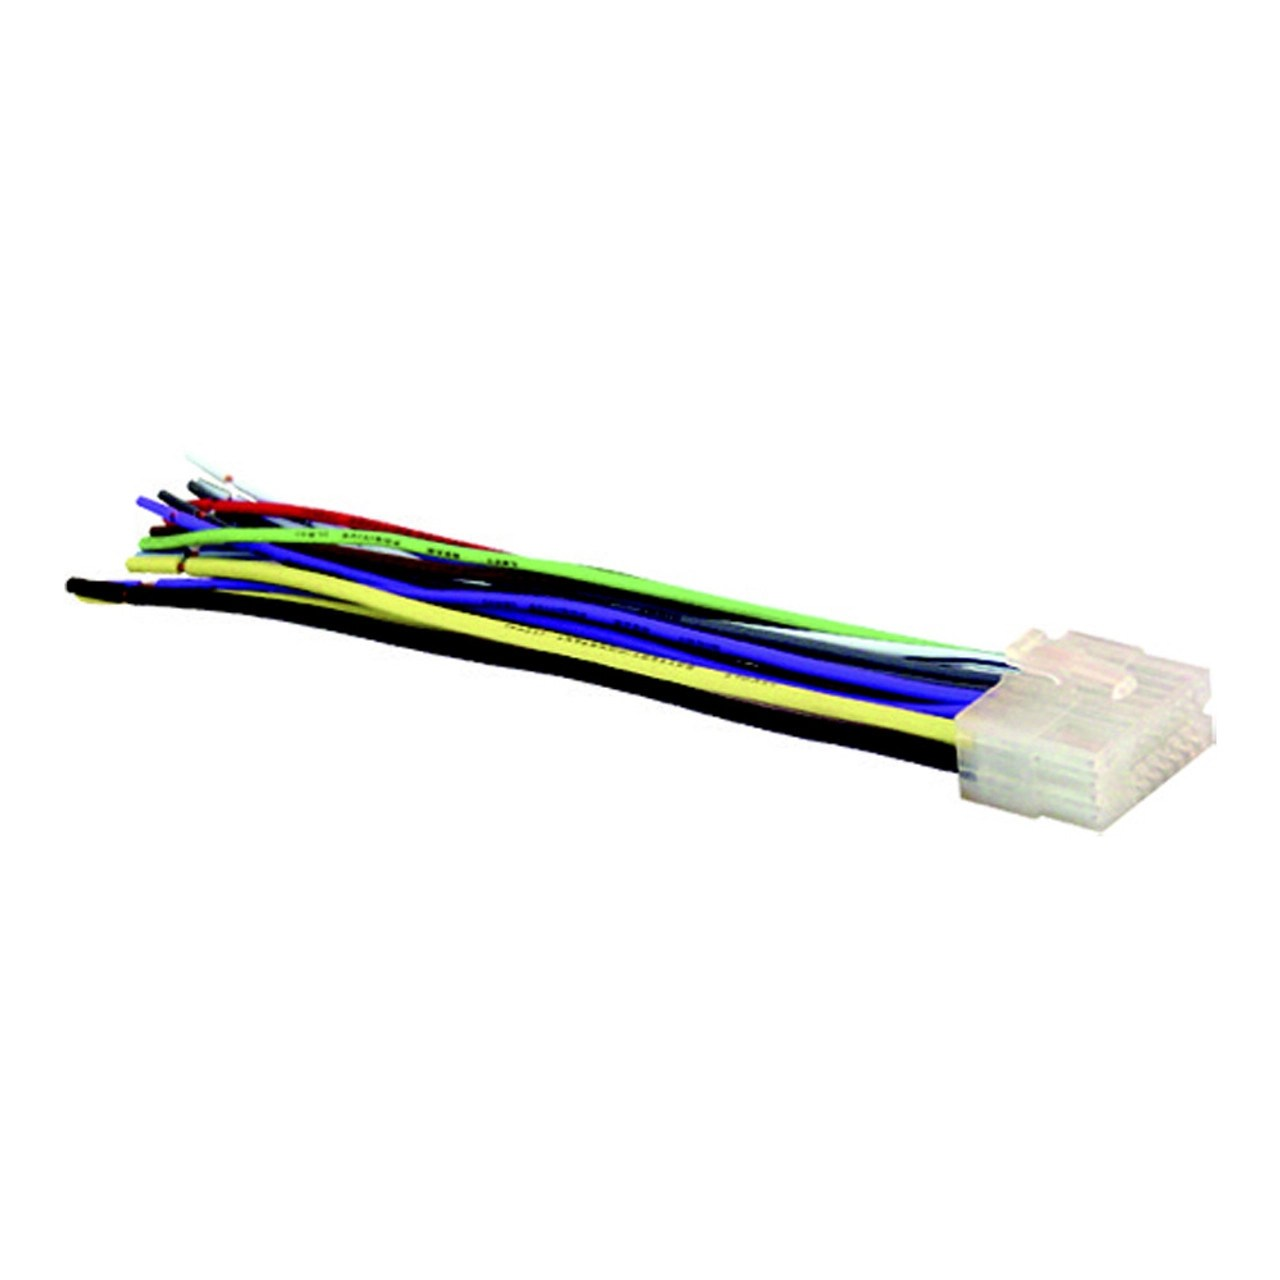 medium resolution of wiring harness clarion 16 pin cl1602 2002 xscorpion wiring harness pioneer 16 pin 20032004 xscorpion join the